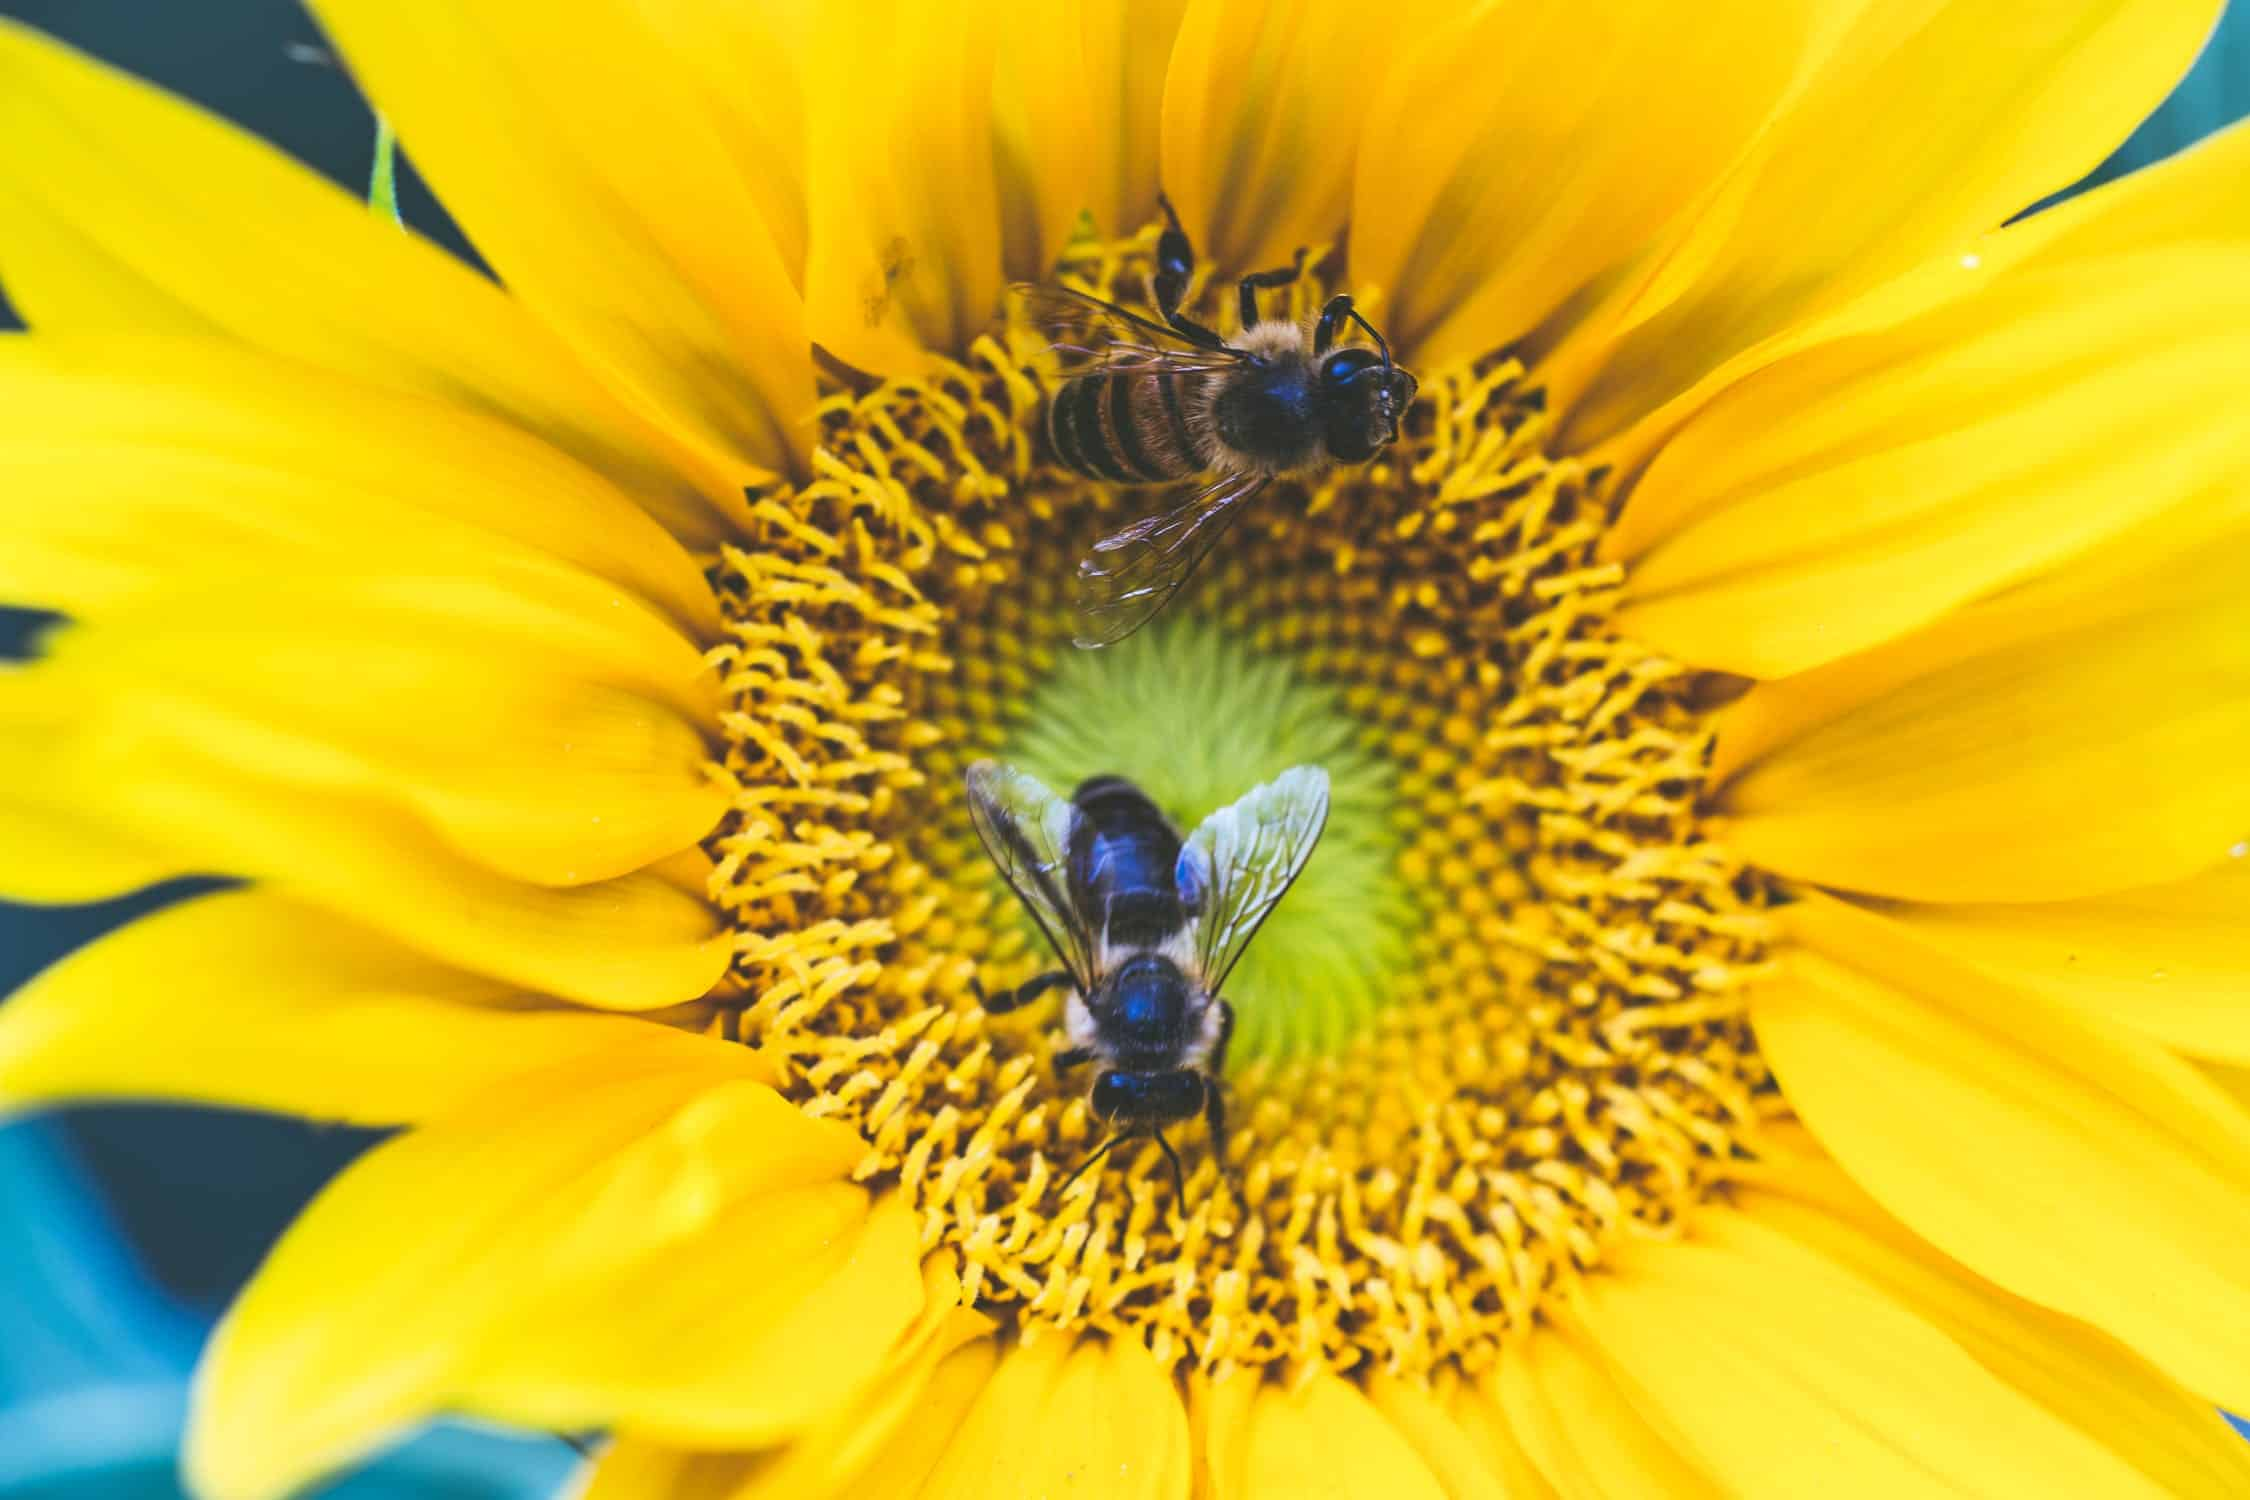 sunflowers definitely attract bees to your patio